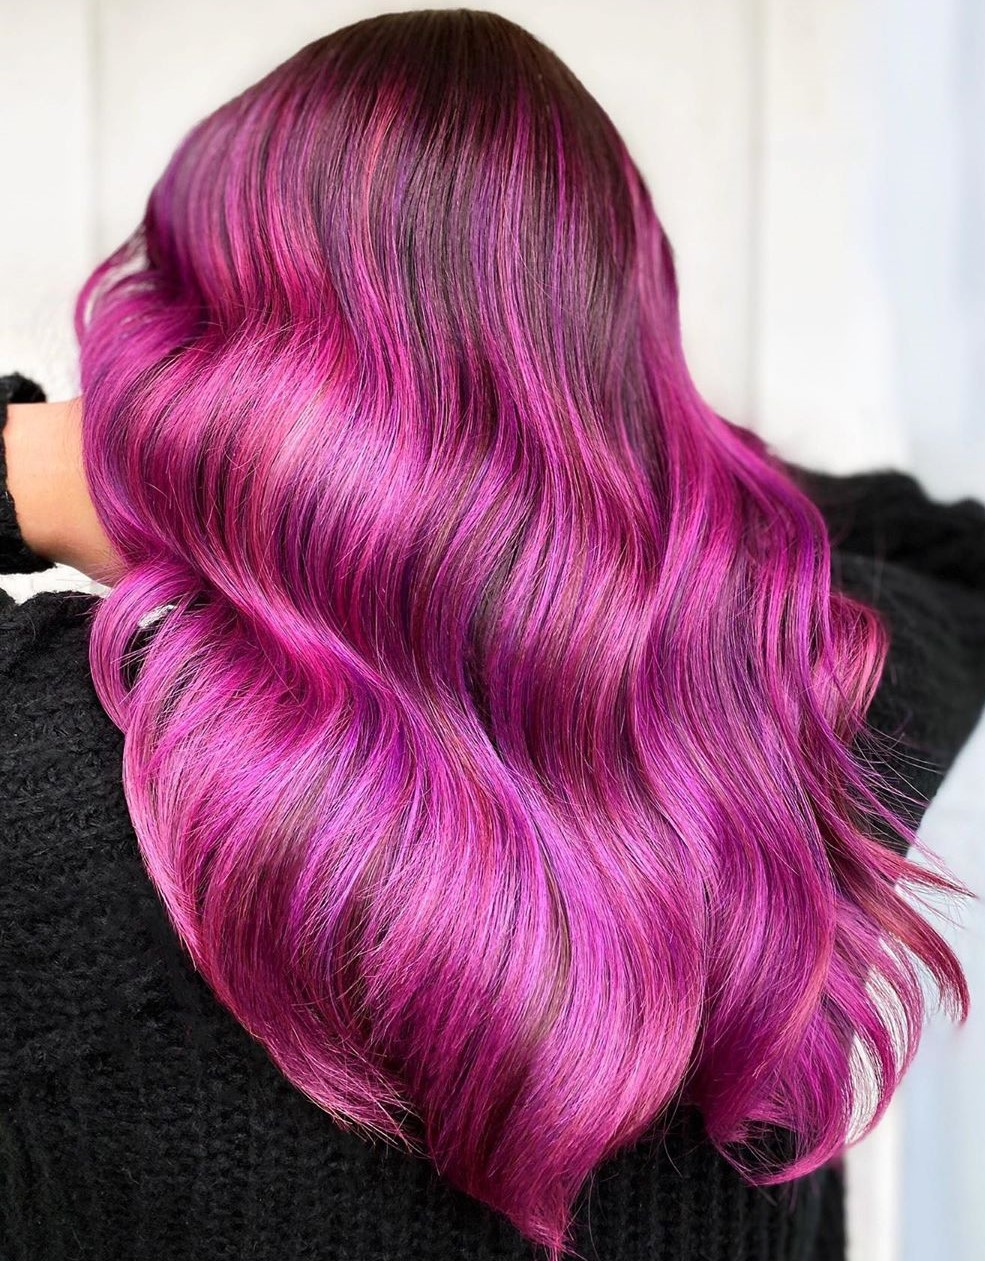 Dark Hair with Fuchsia Balayage